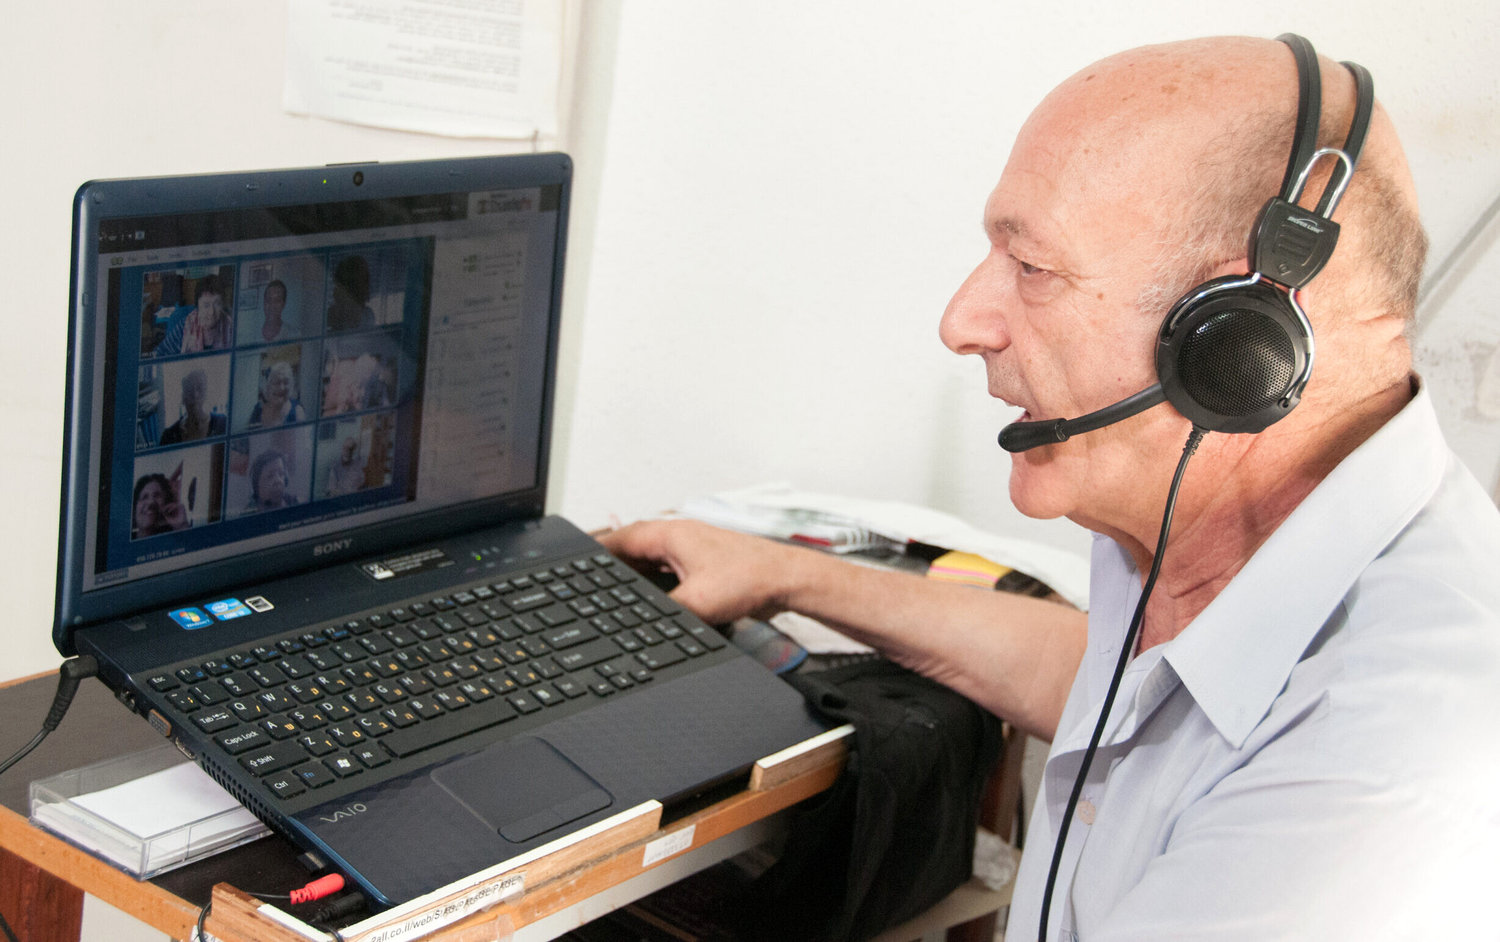 Elderly Israelis, who used videoconference chats during the 2014 Gaza war, are at it again during the coronavirus crisis.